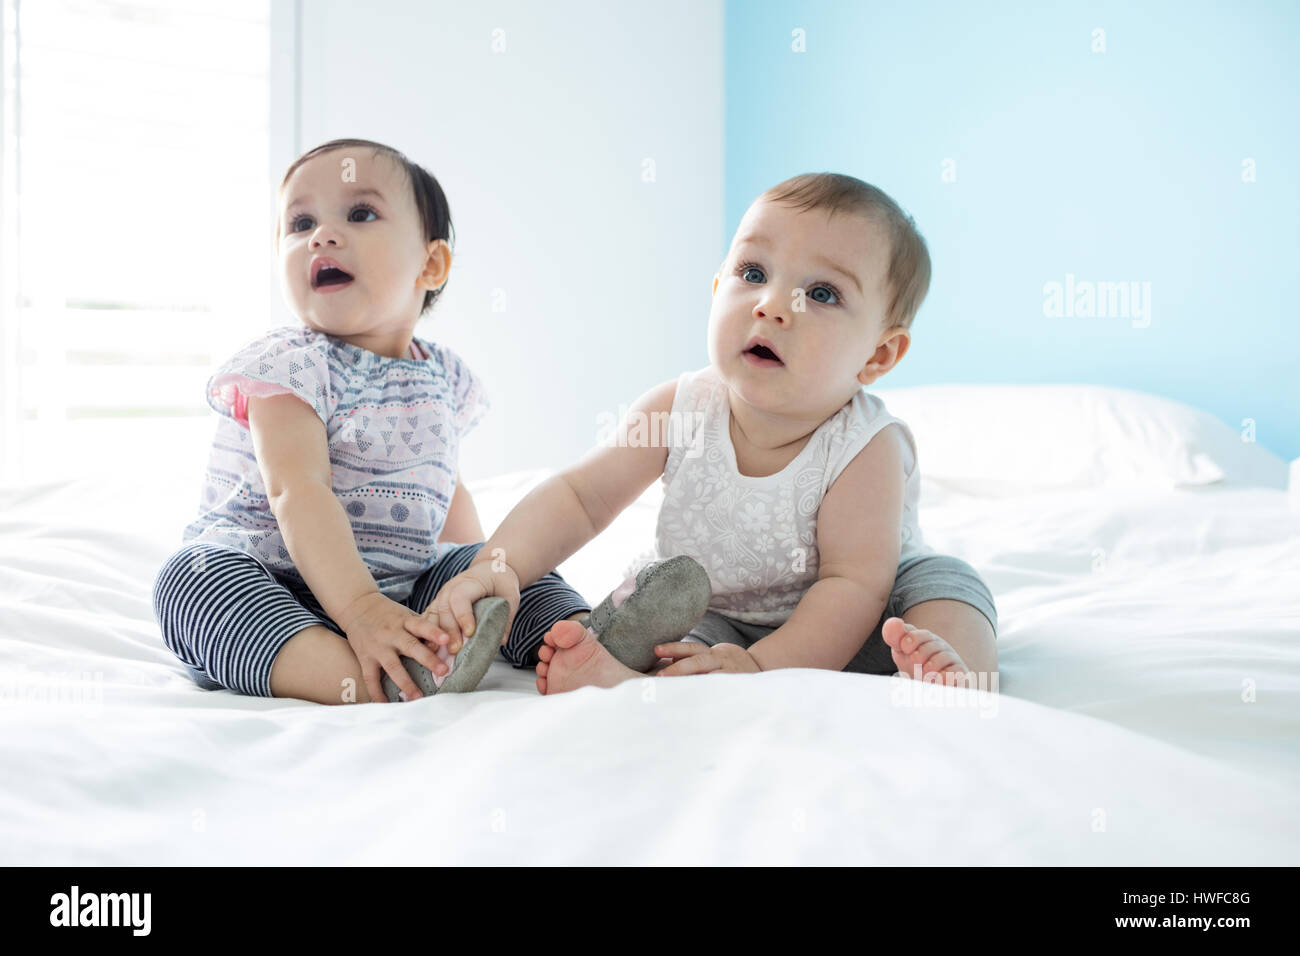 Two cute baby girls relaxing on bed in bedroom - Stock Image